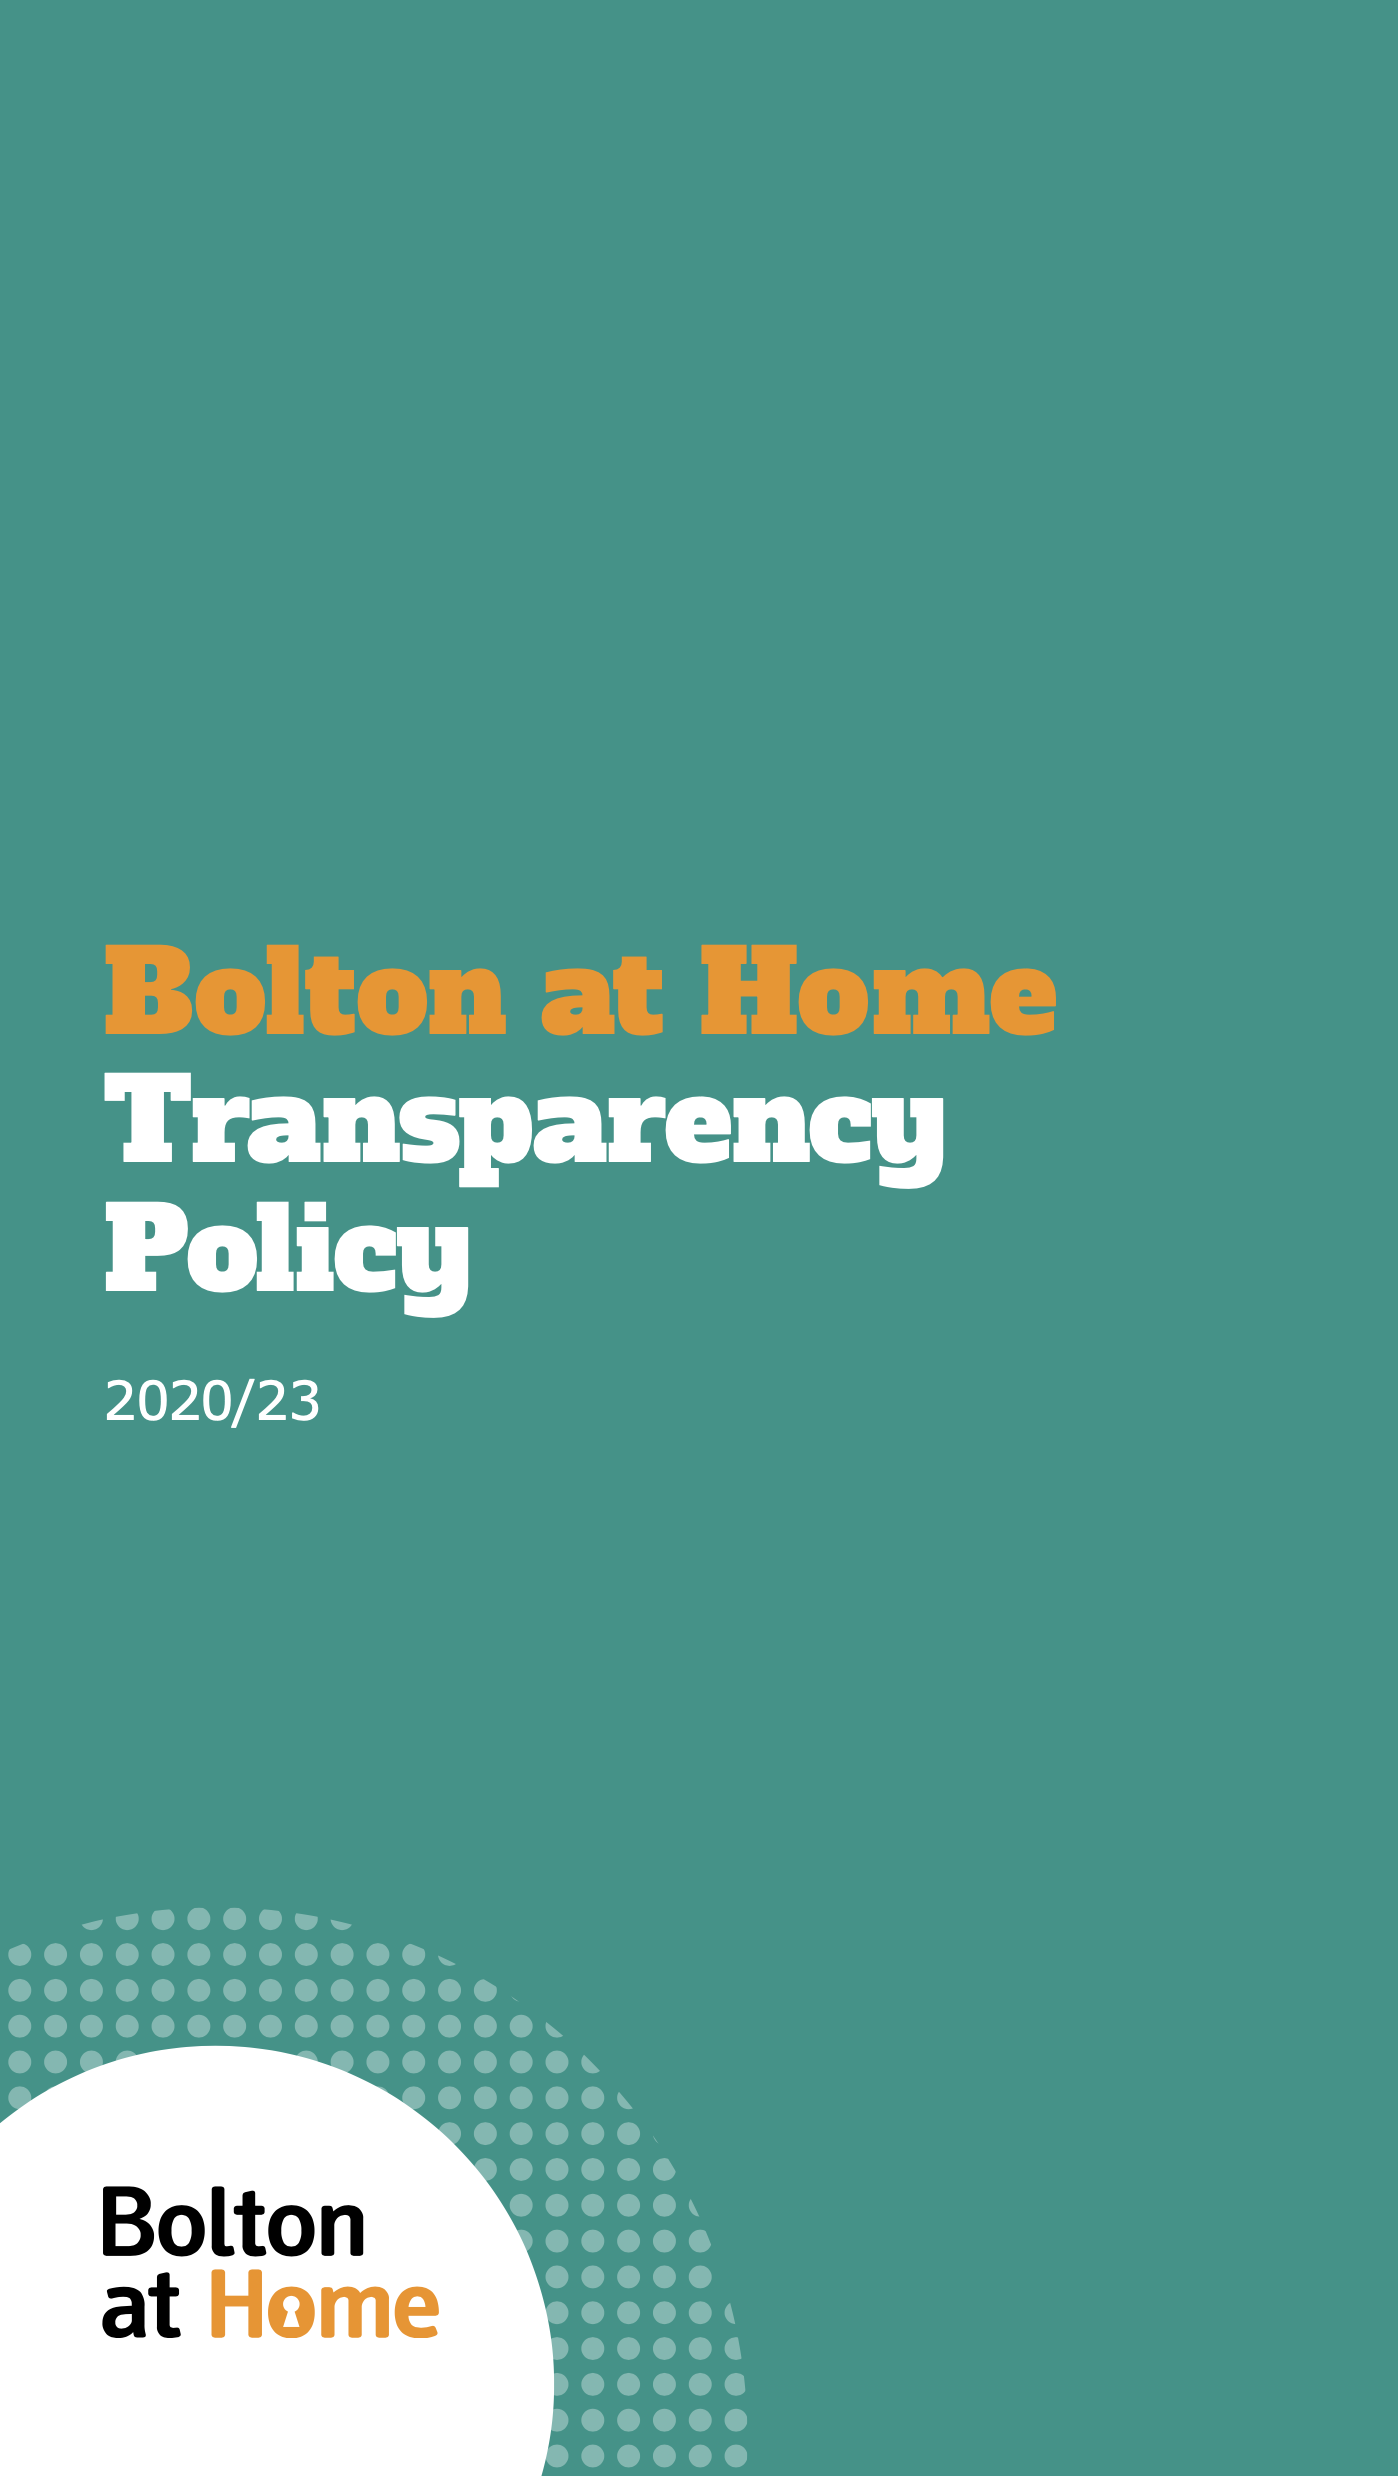 Decorative thumbnail of our Transparency Policy cover